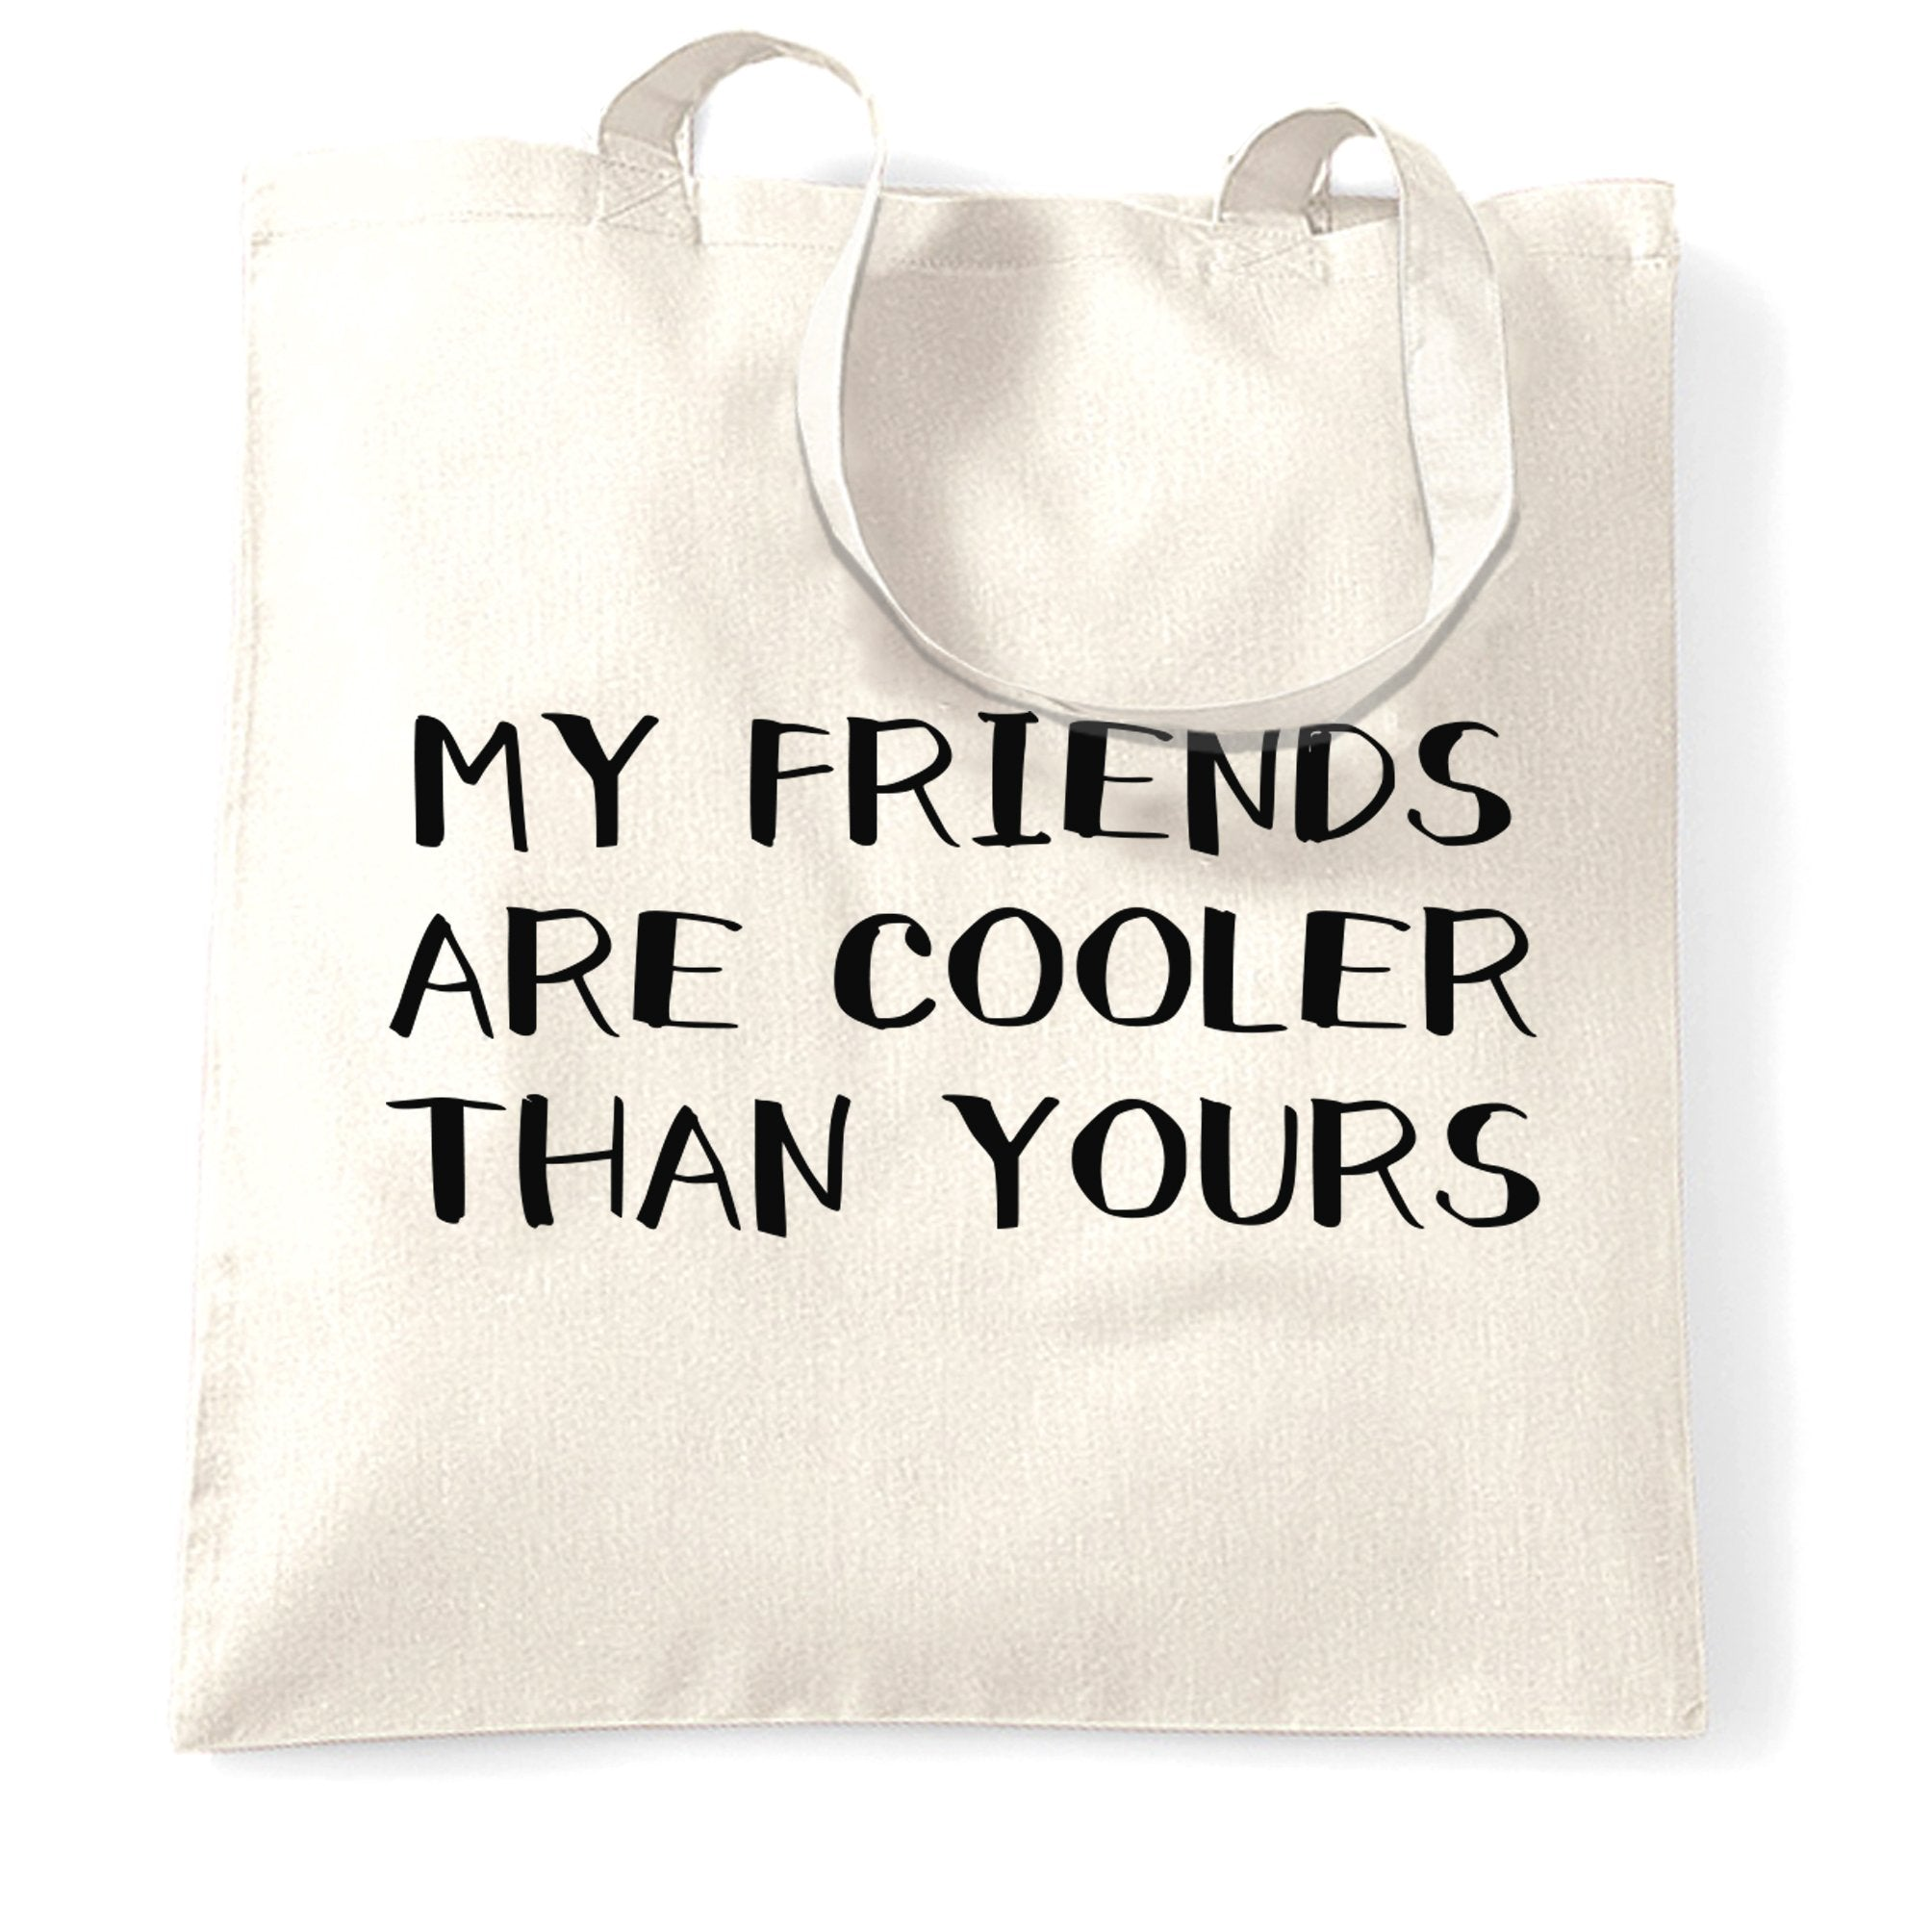 Novelty Tote Bag My Friends Are Cooler Than Yours Joke